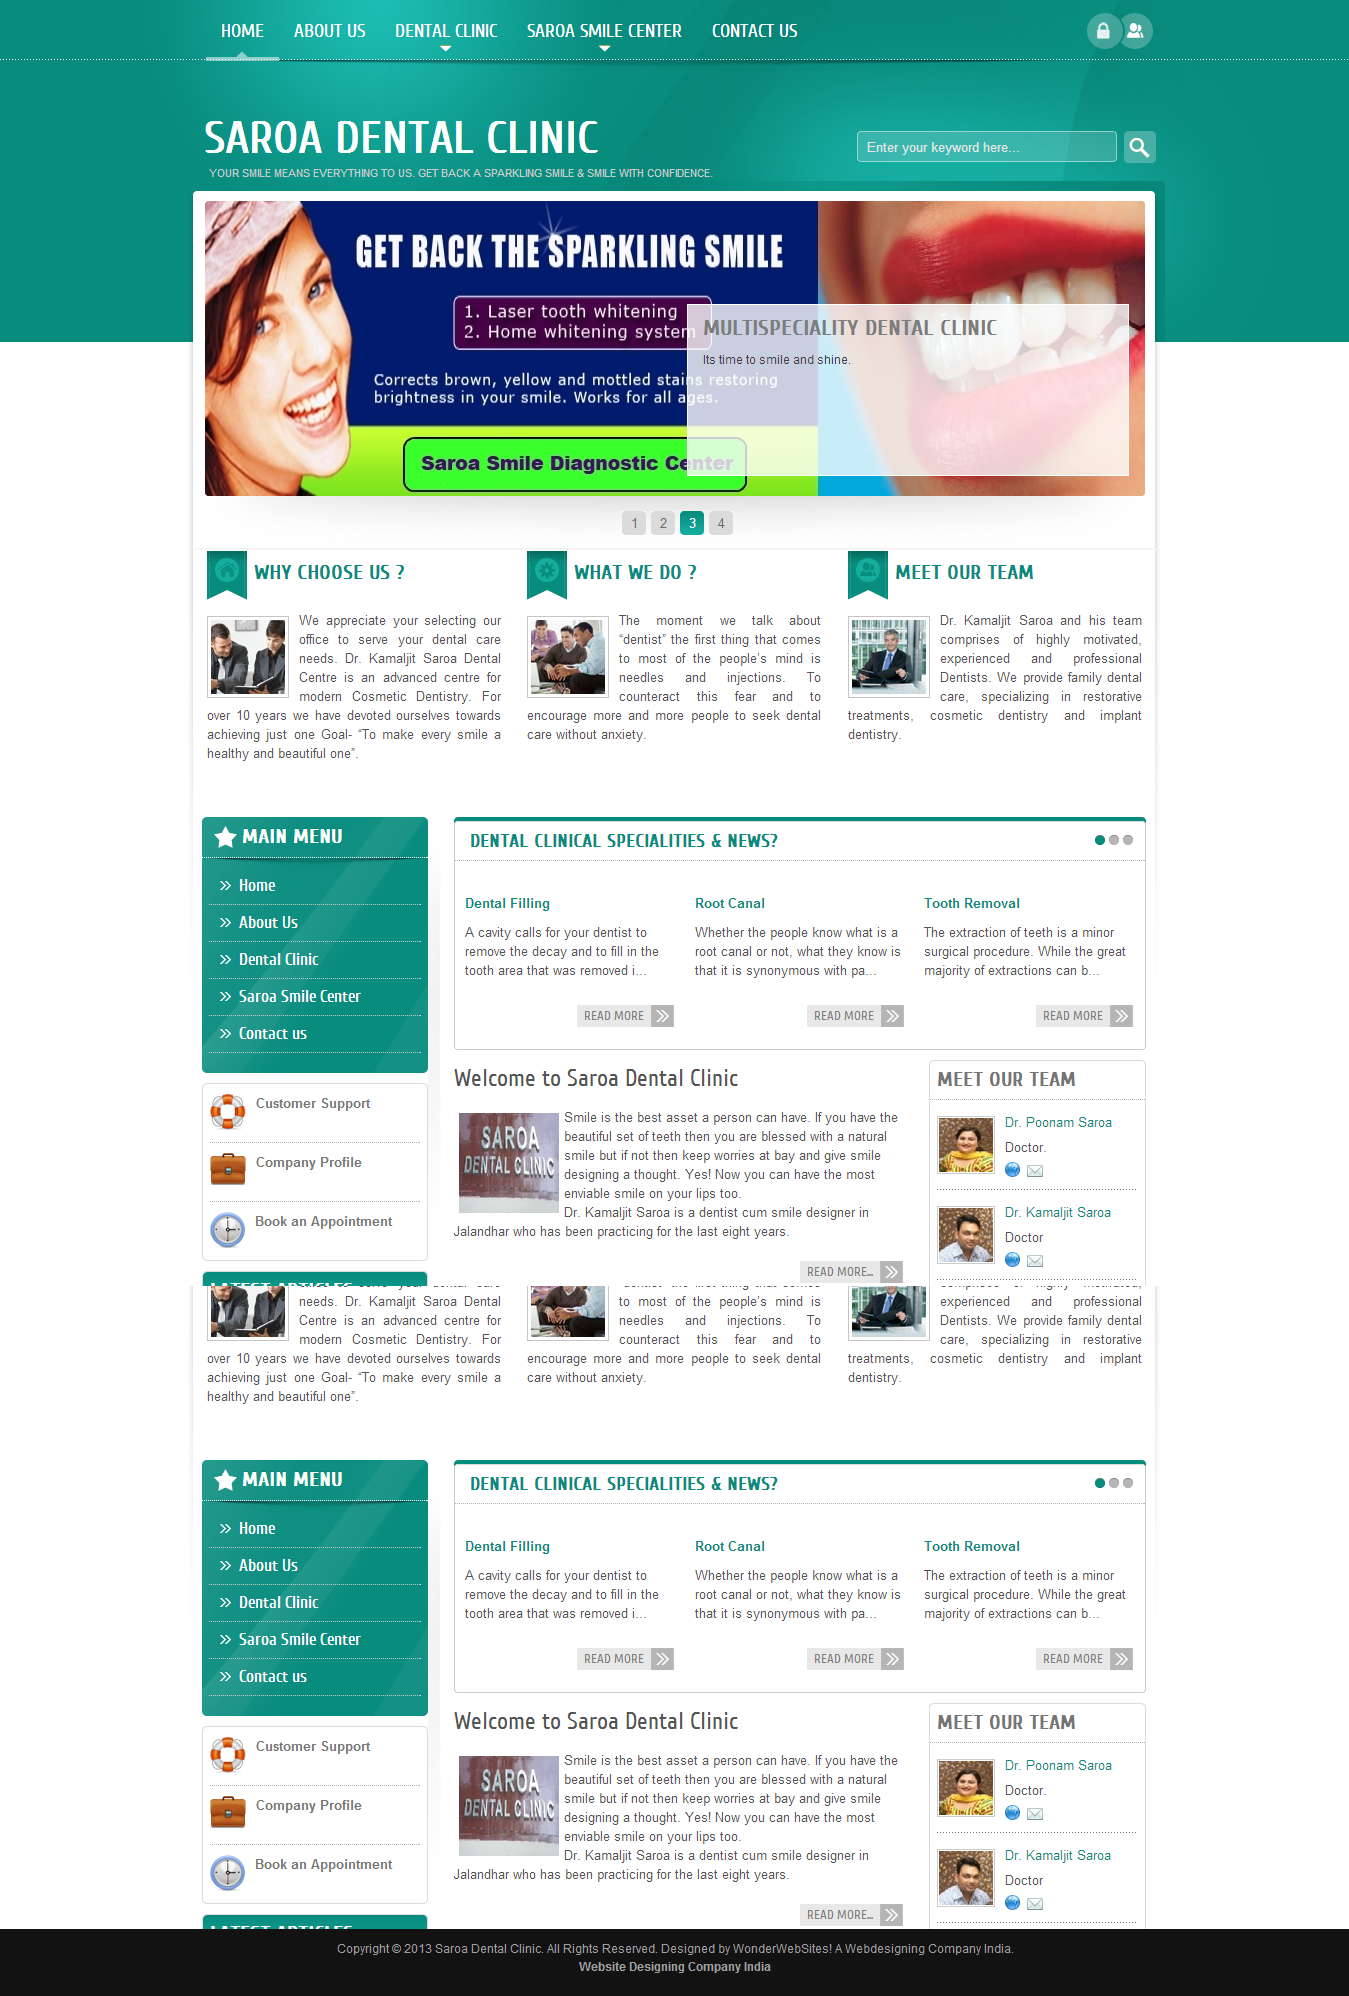 Saroa Dental Clinic Website | Web Design India